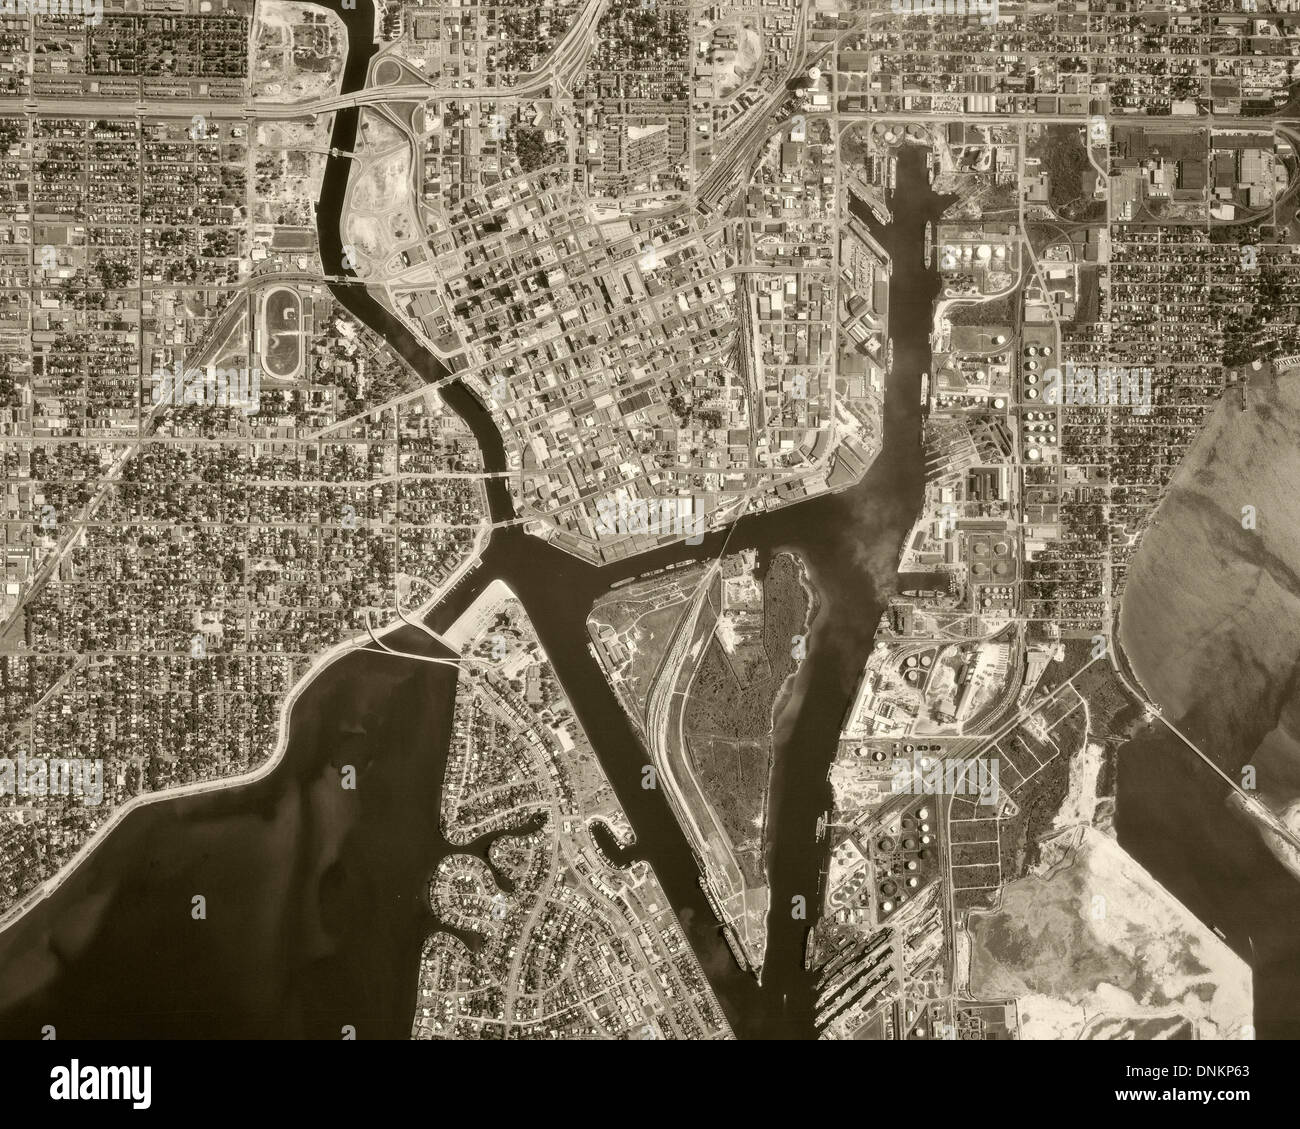 historical aerial photograph Tampa, Florida, 1969 - Stock Image